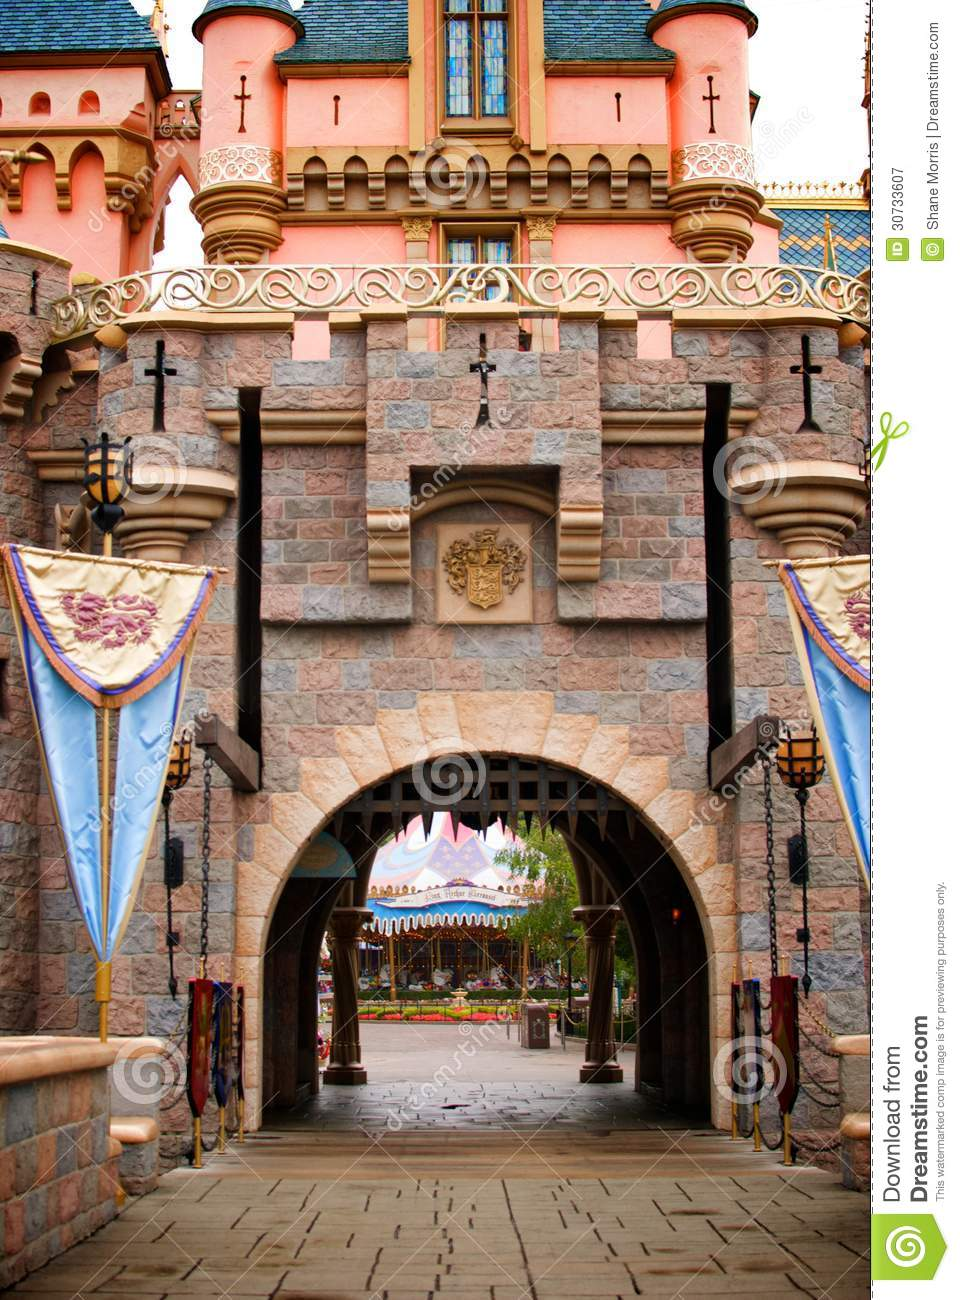 Fantasy Castle With Flags And Iron Gate Stock Image